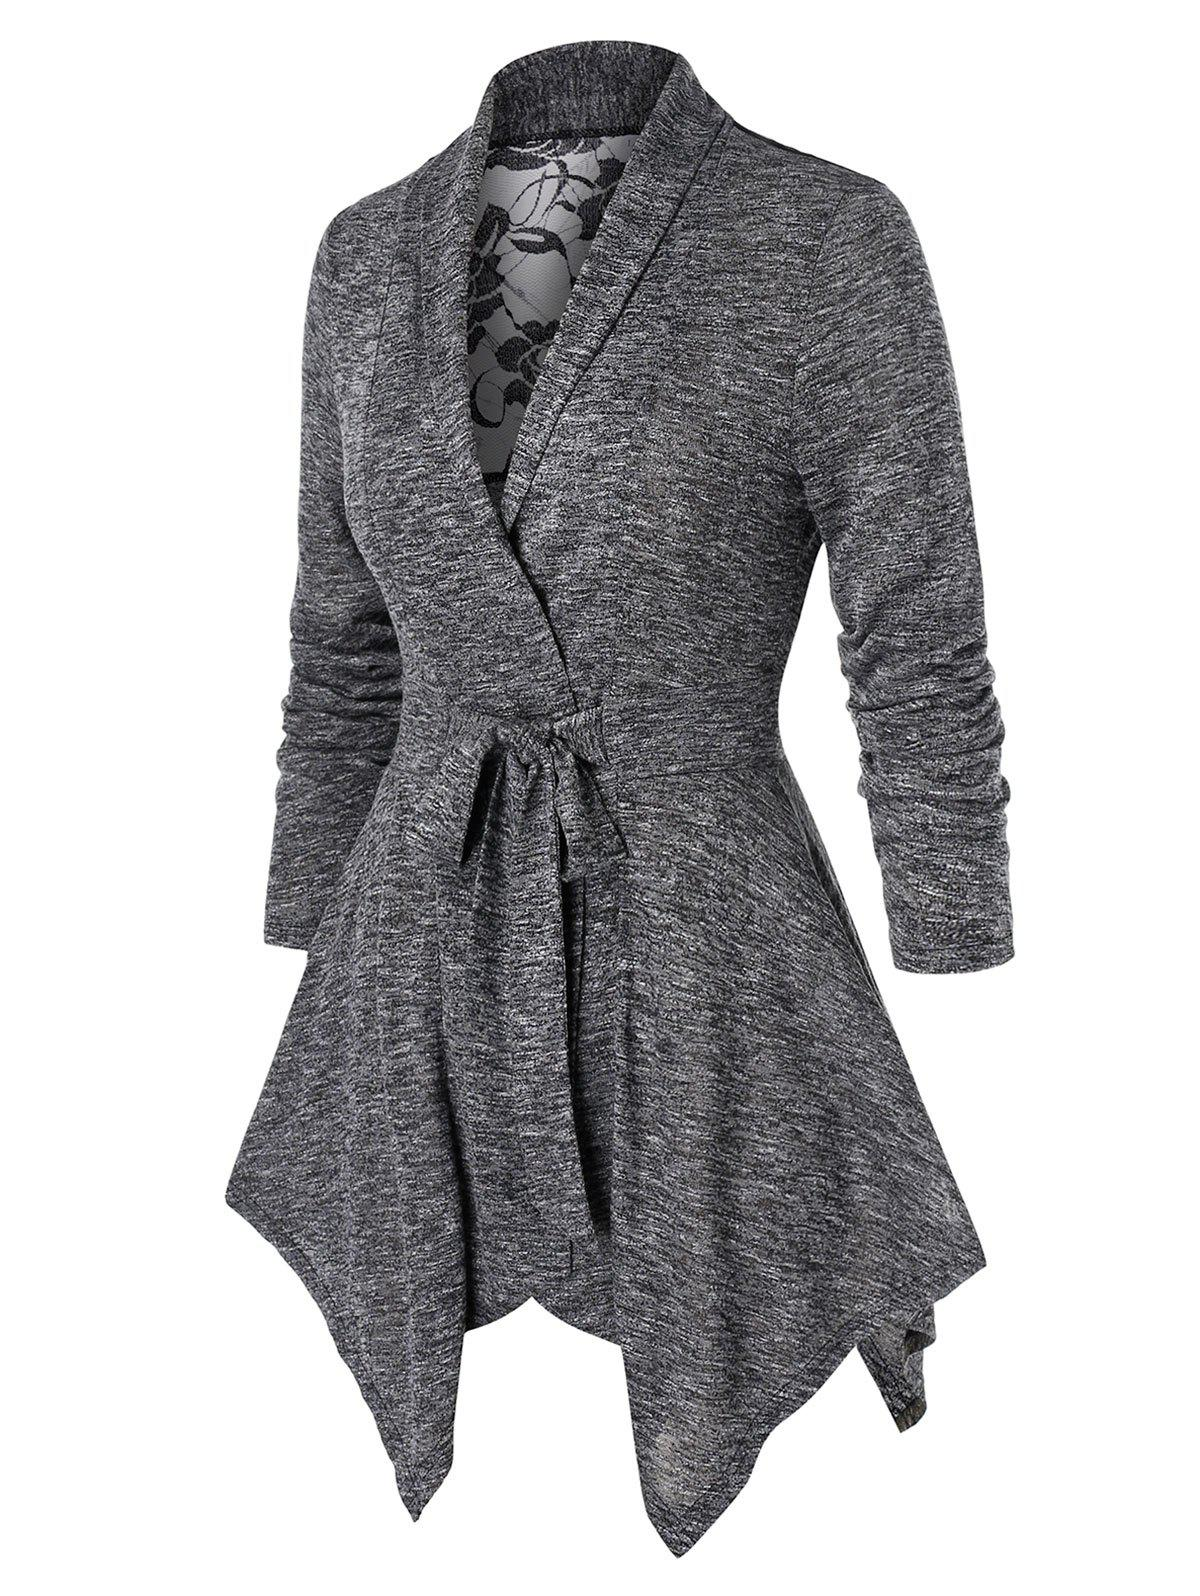 Plus Size Long Sleeve Marled Lace Insert Coat - GRAY CLOUD 4X